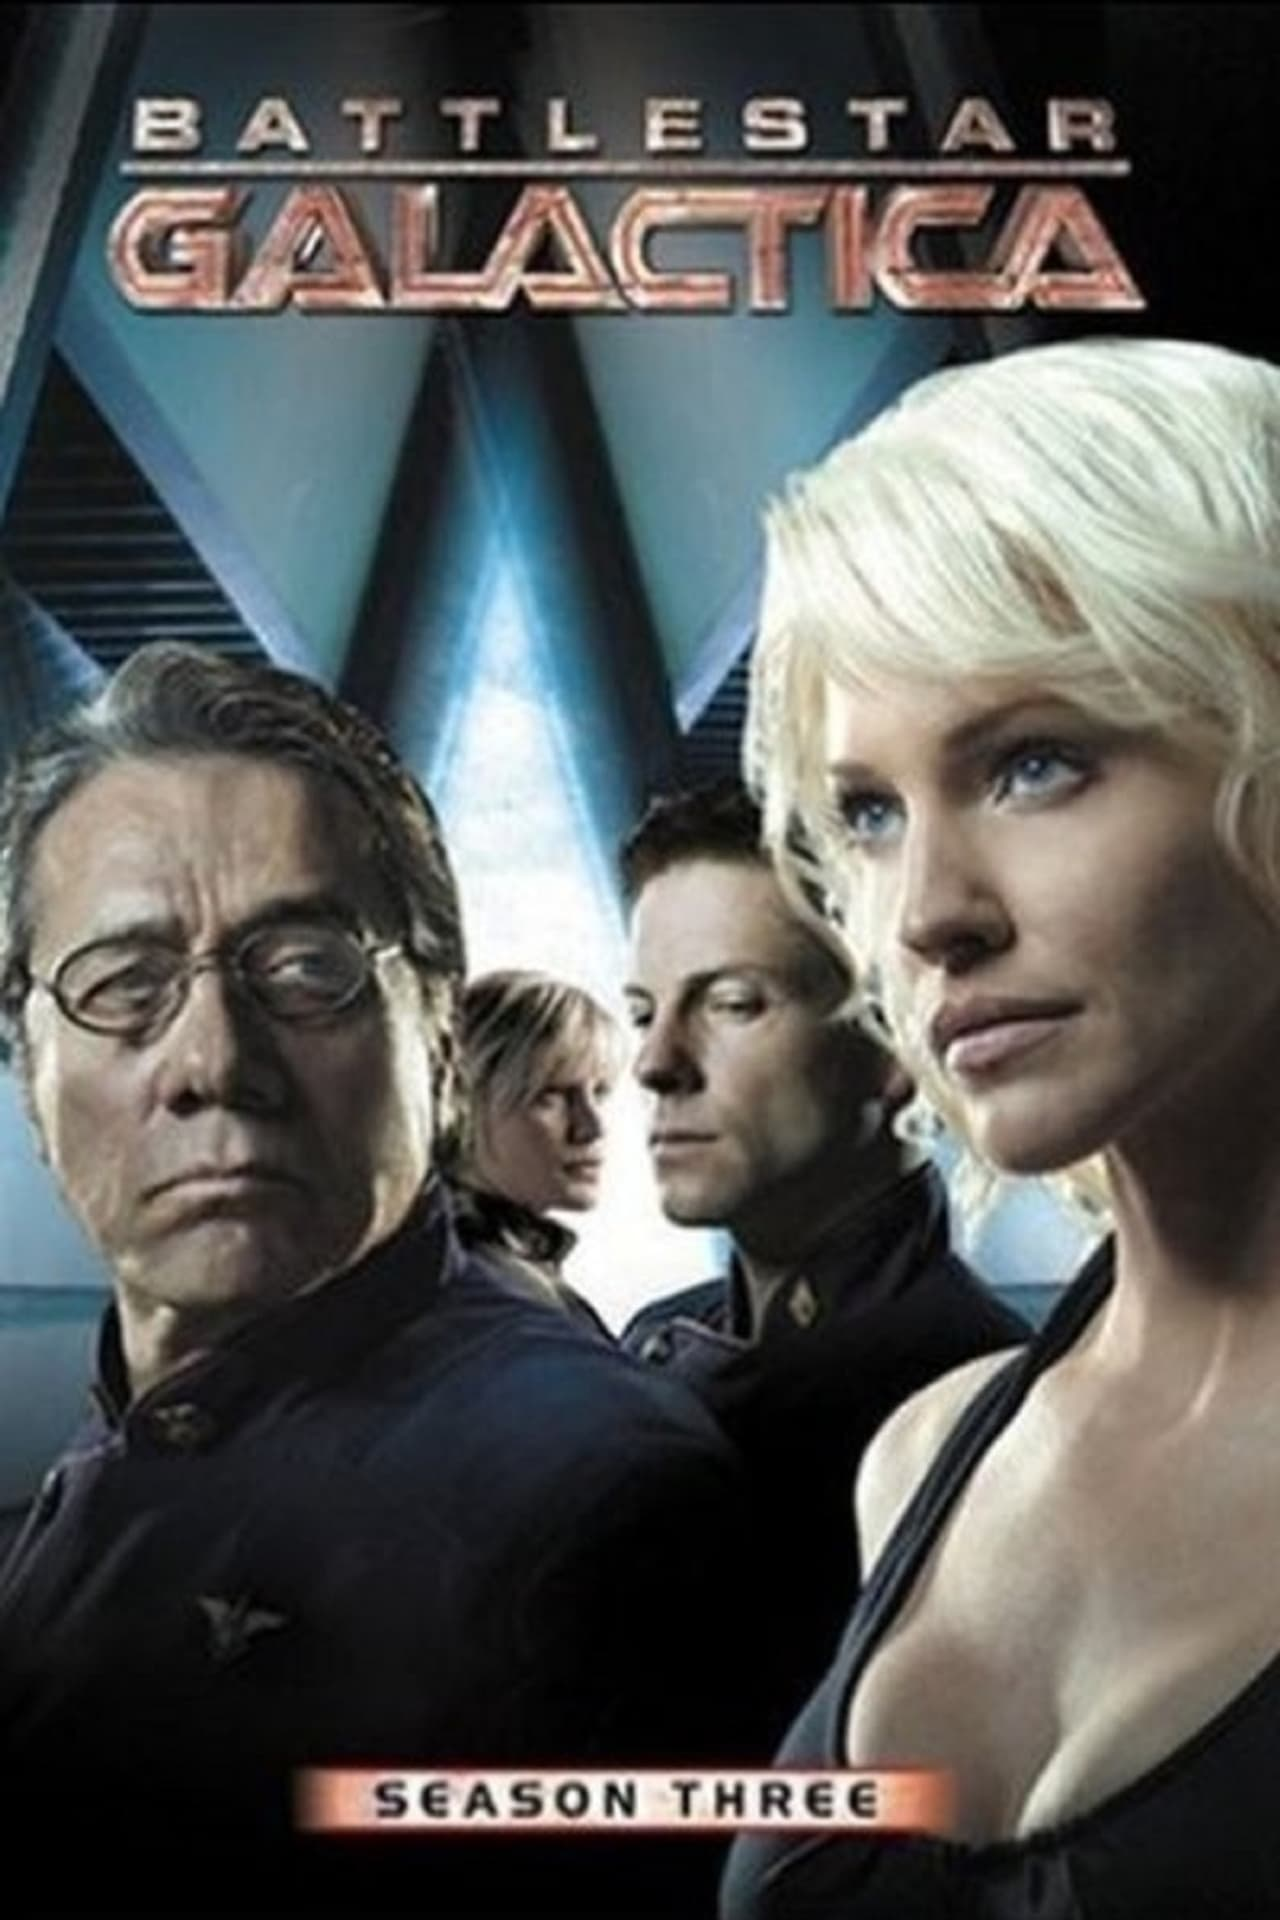 Watch Battlestar Galactica Season 3 Online